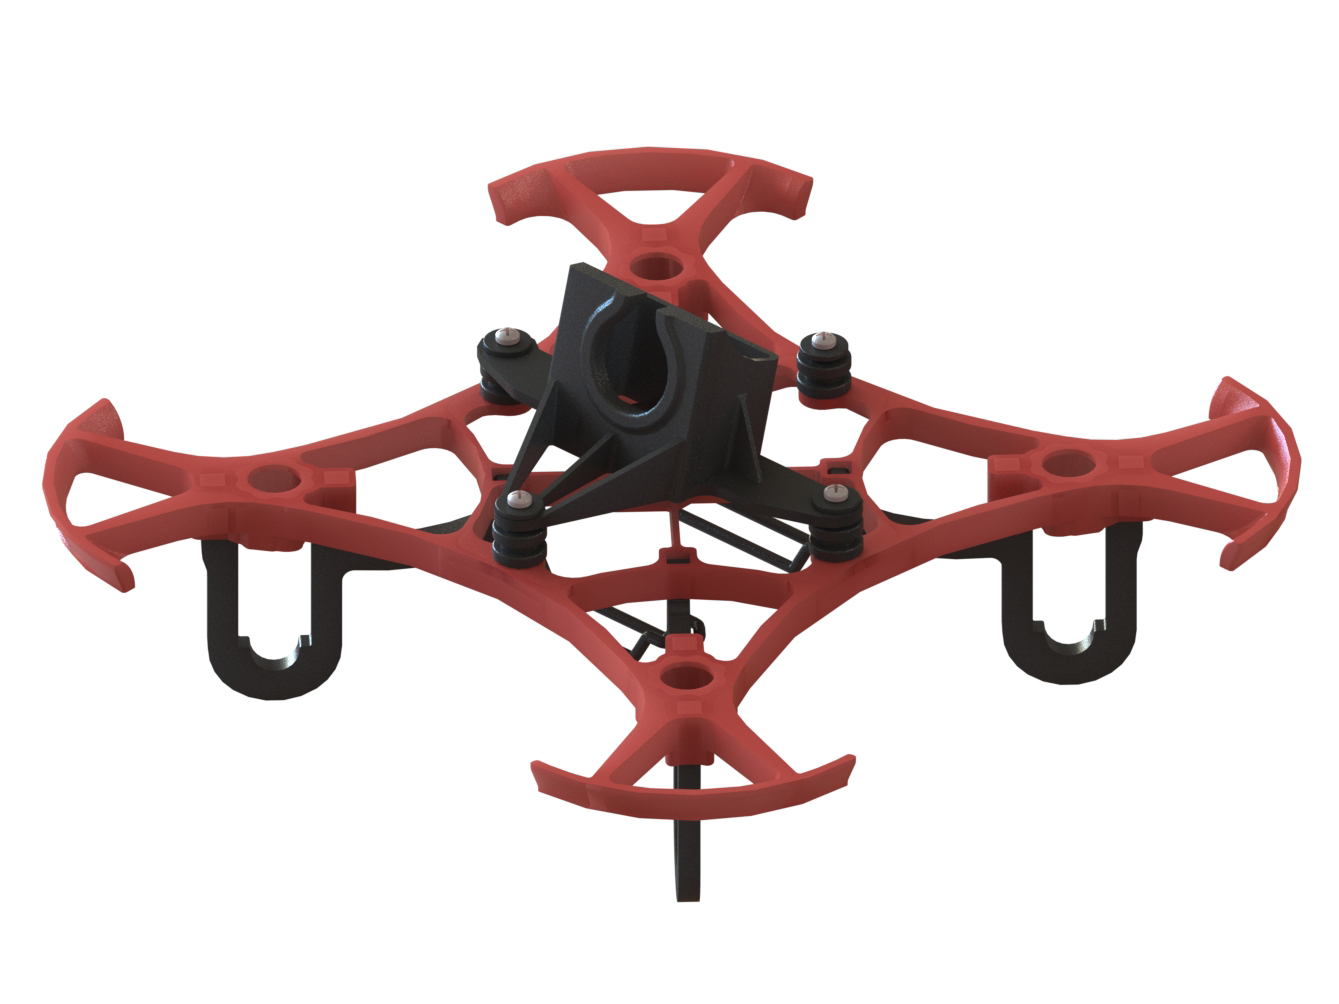 LX2411-7 - Pika 65 FPV Racer, Red Color